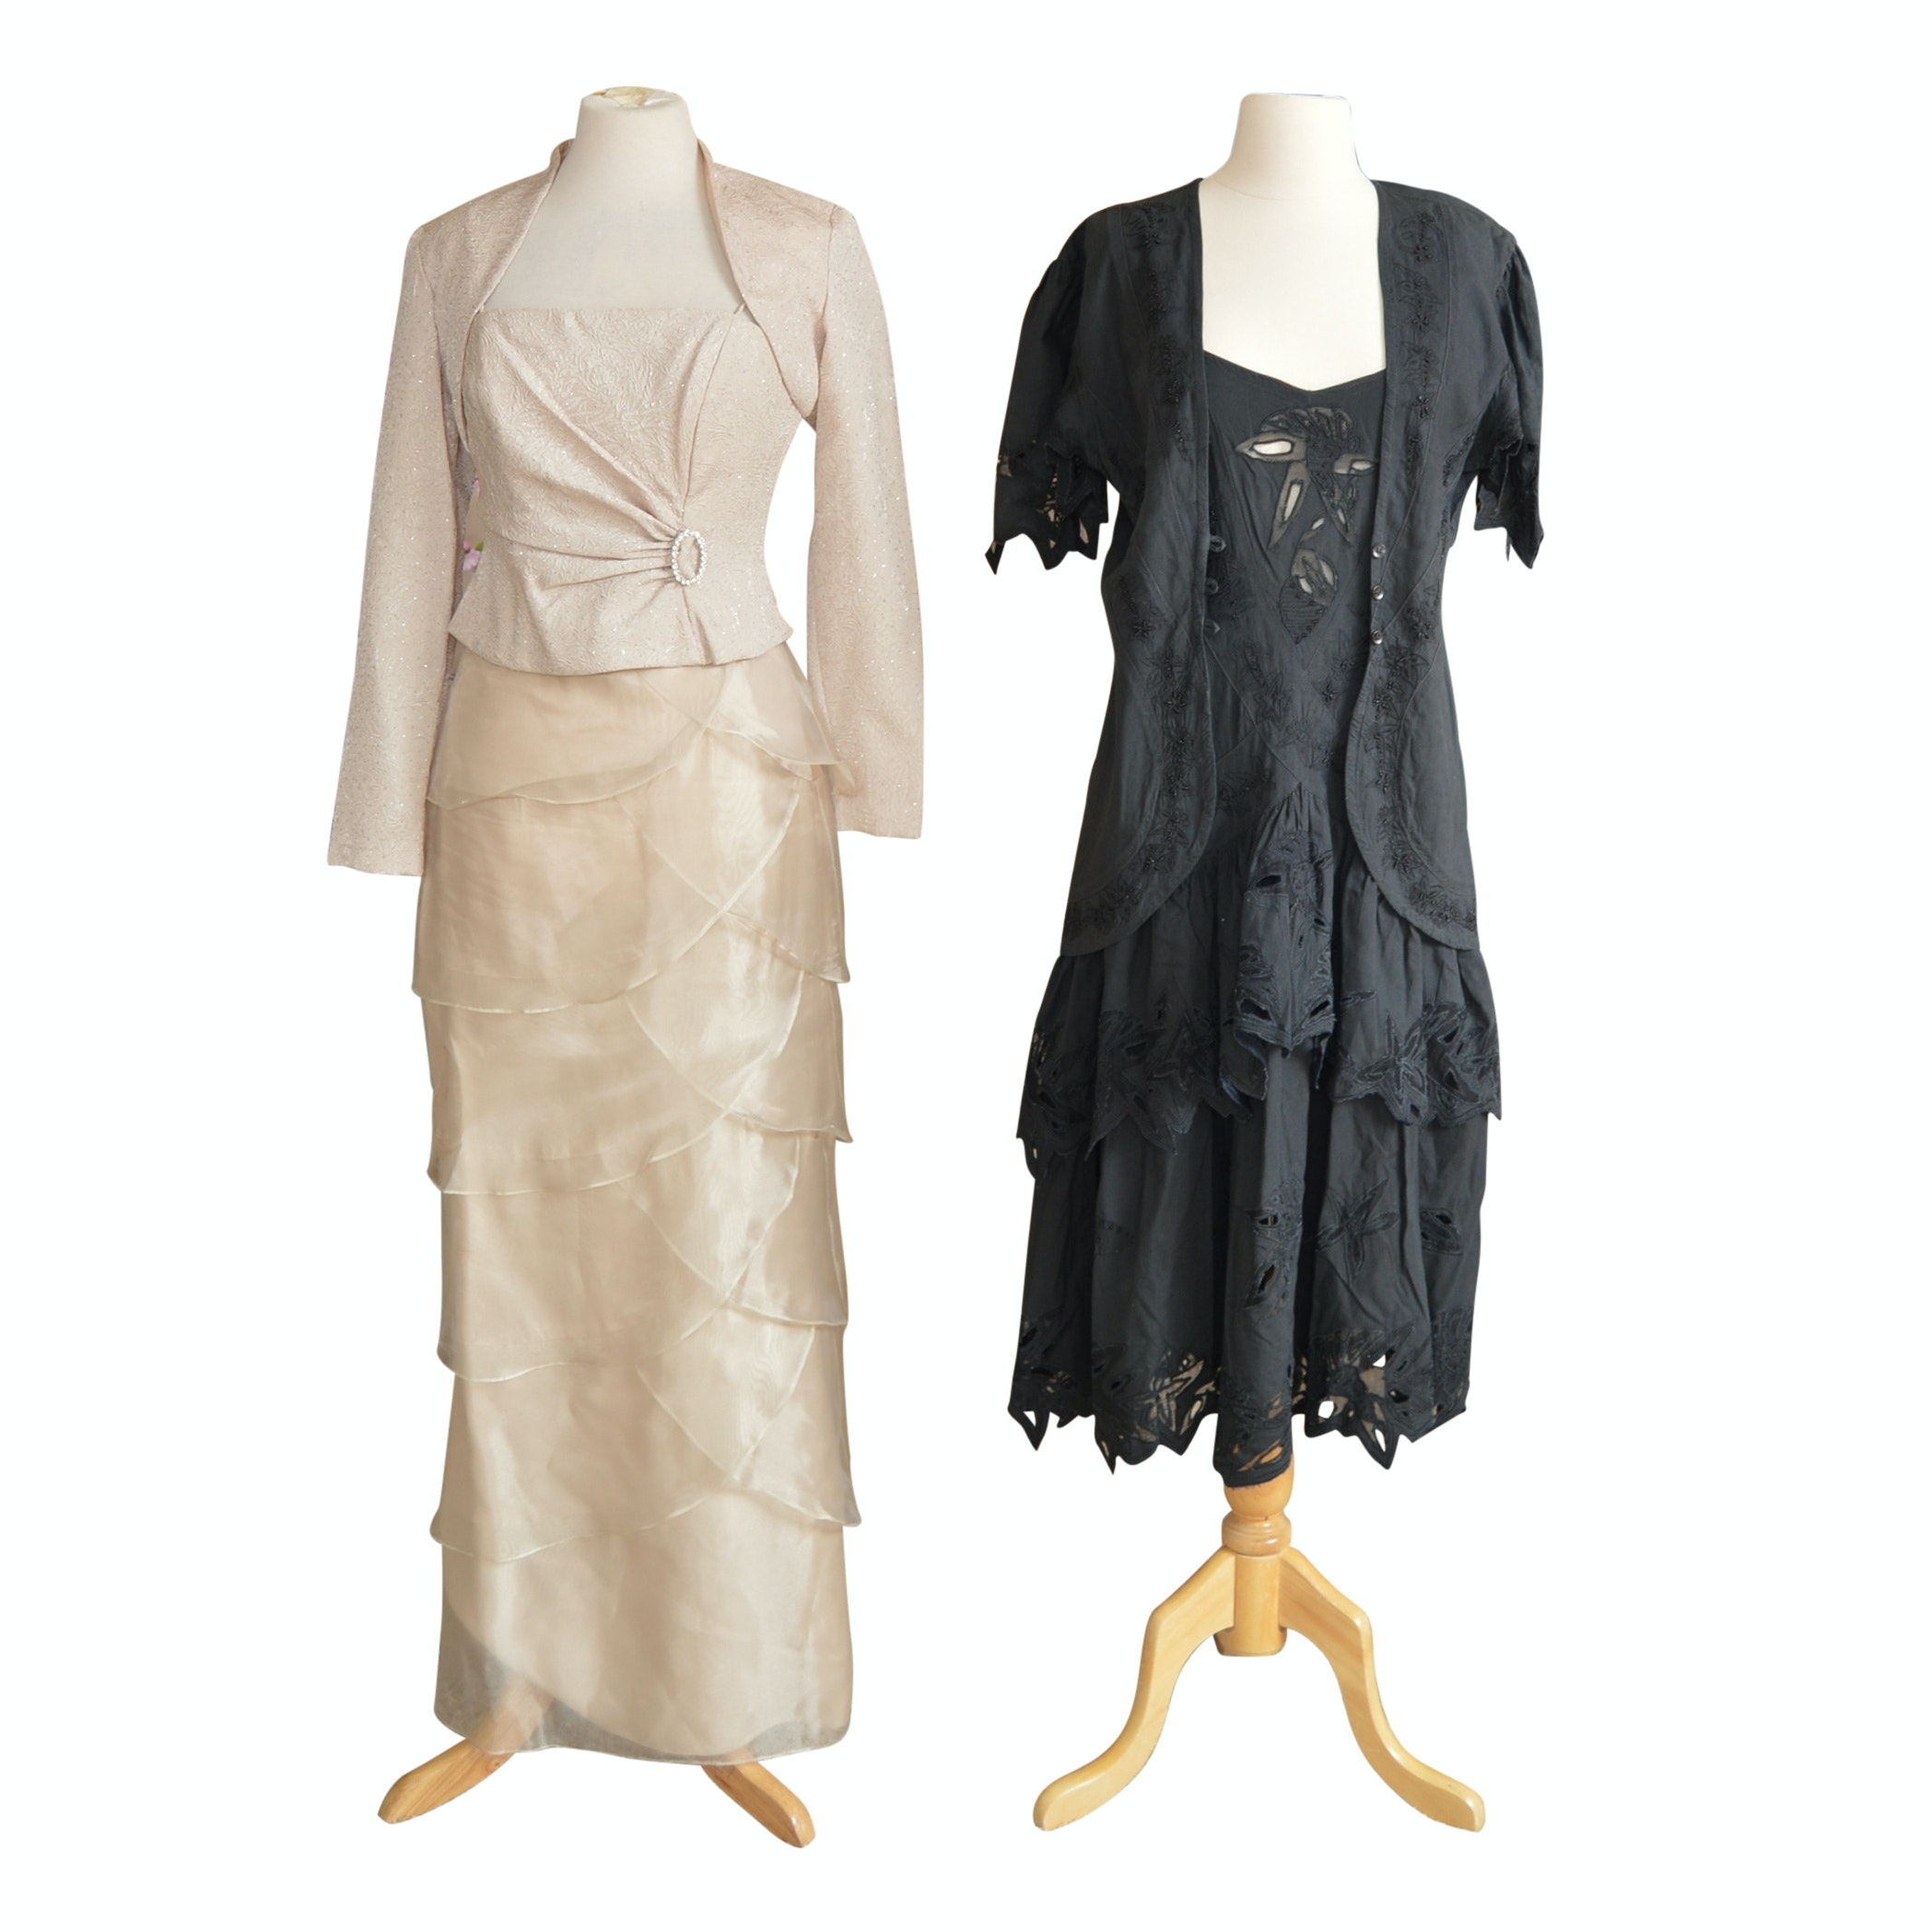 Women's Vintage Dresses with Jackets